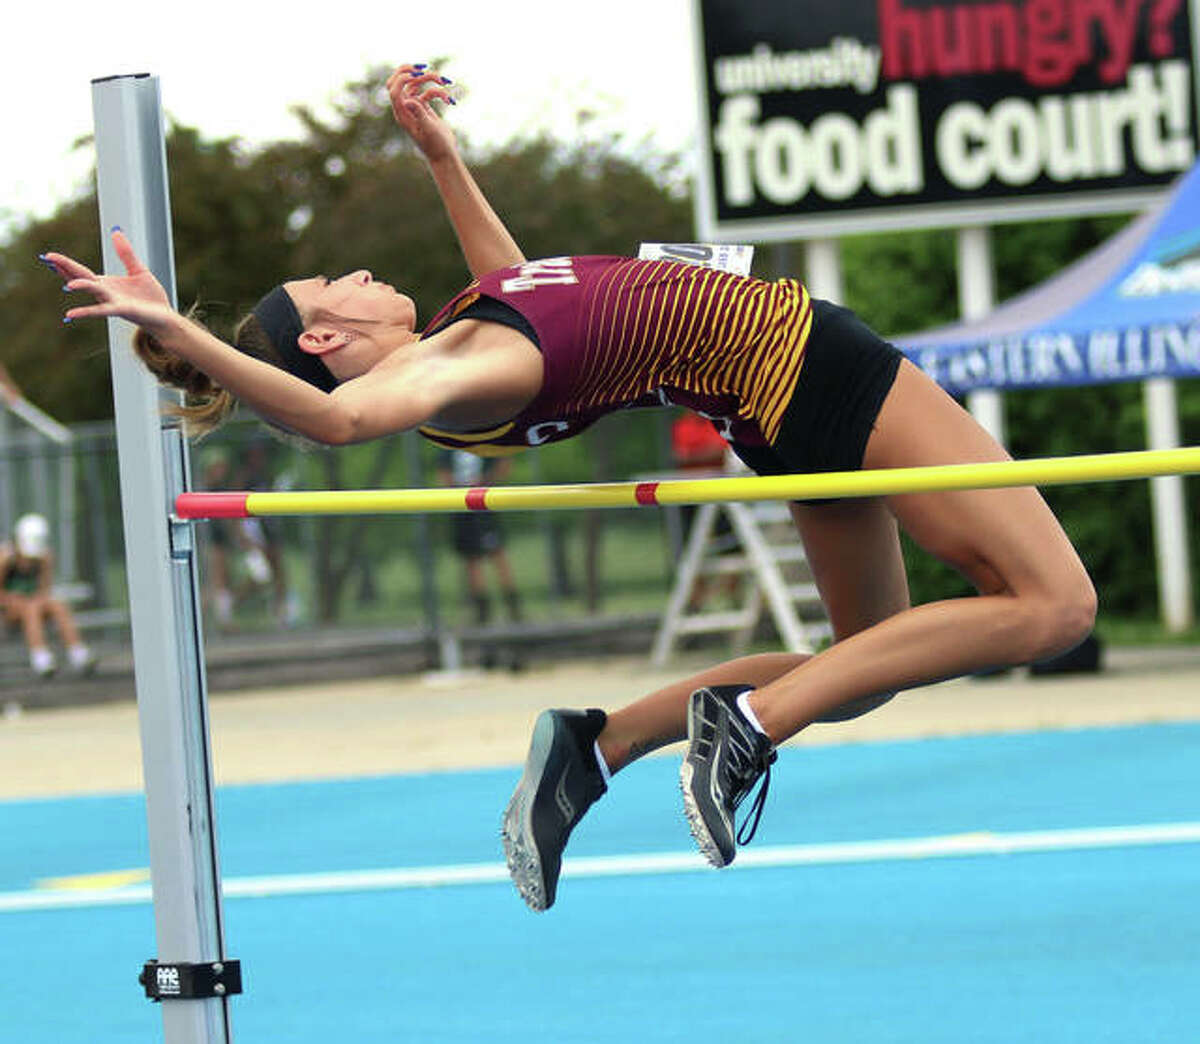 EA-WR senior Hannah Sechrest gets over the bar at 5 feet, 2 inches in the high jump at the Class 2A state meet Friday at O'Brien Stadium in Charleston. Sechrest finished seventh in the event, adding the the eighth-place state medal she won as a sophomore.